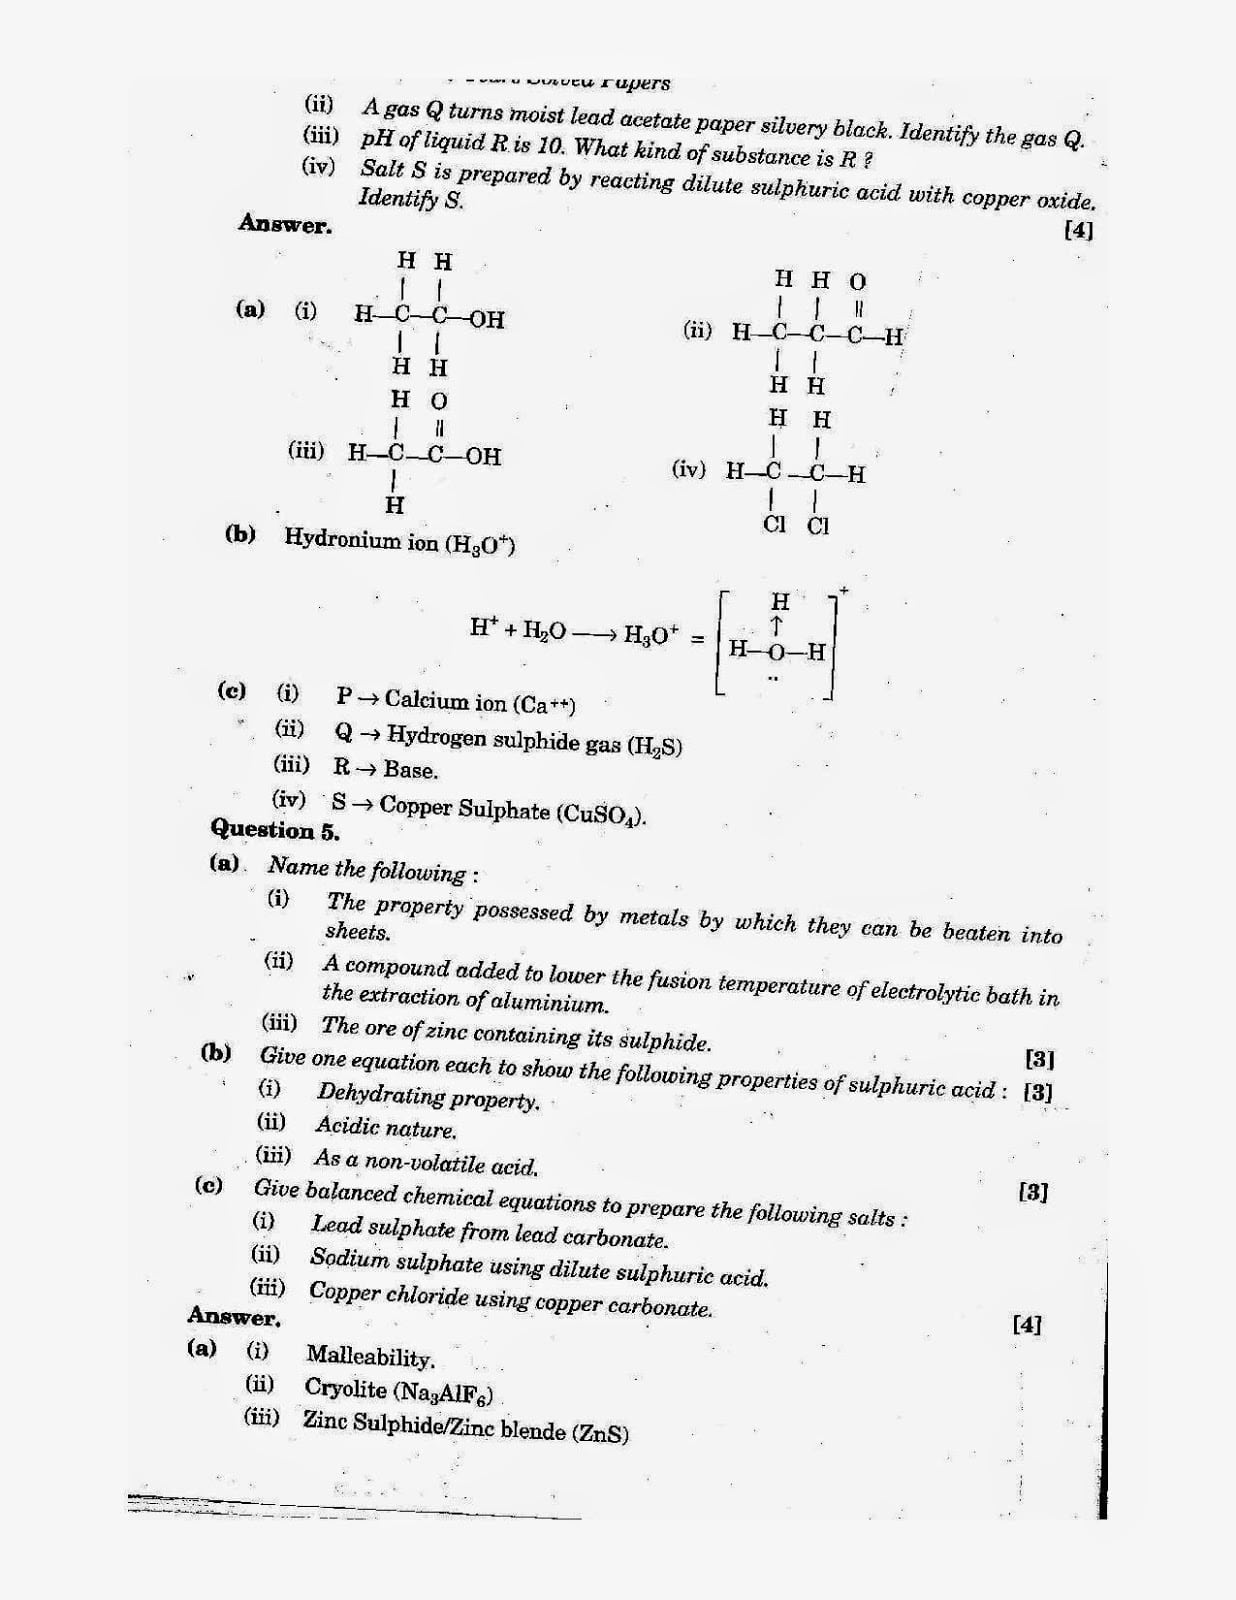 ICSE Class 10 Chemistry 2014 Question Paper